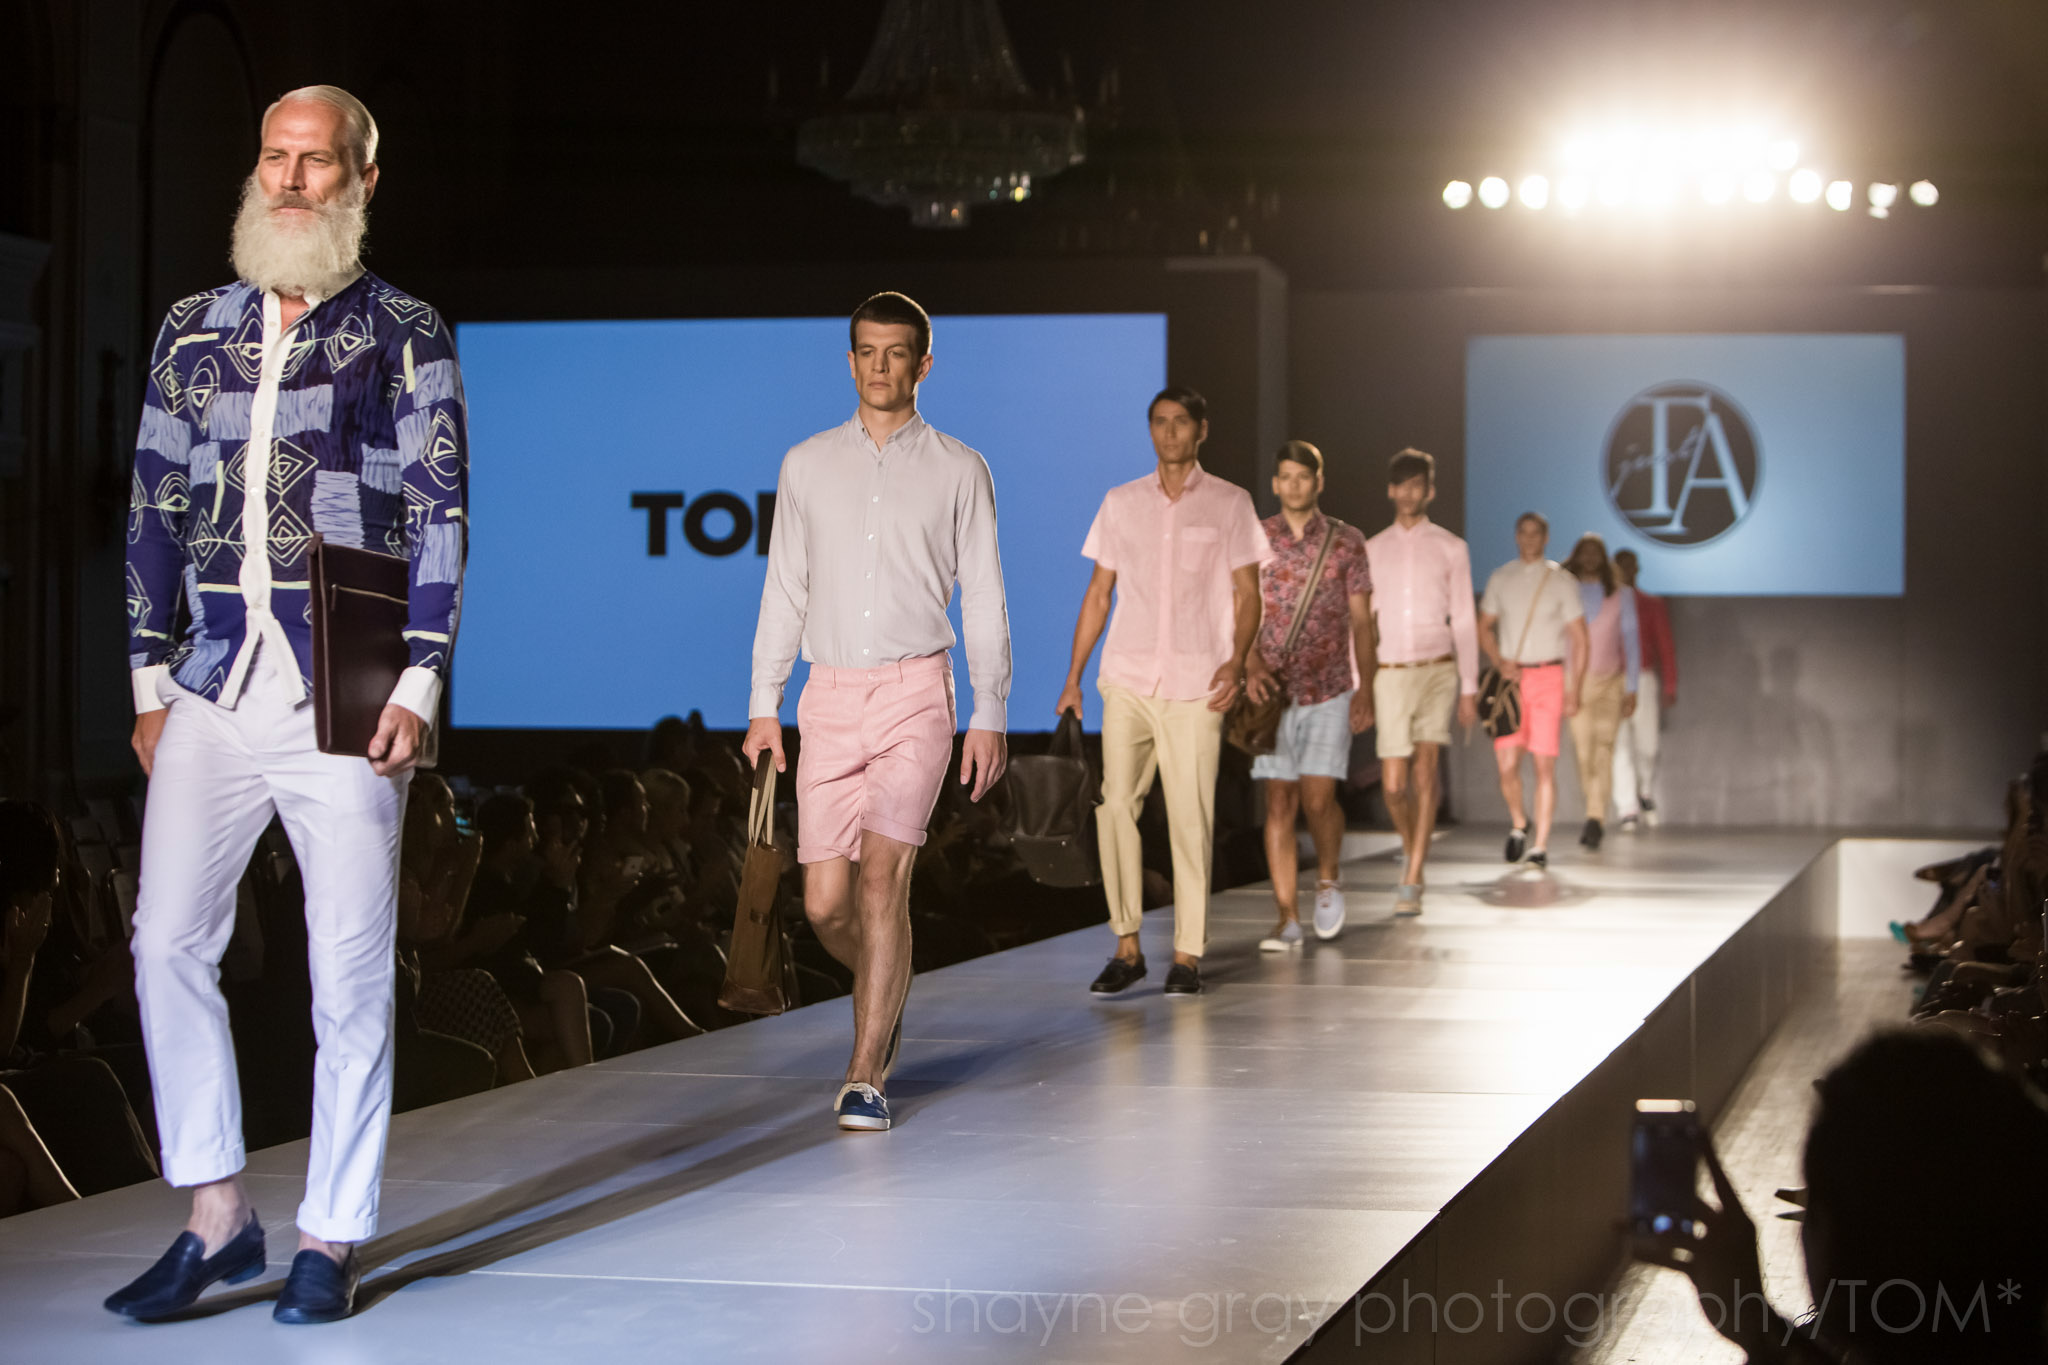 Shayne-Gray-Toronto-men's-fashion_week-TOM-just-ta-6093.jpg